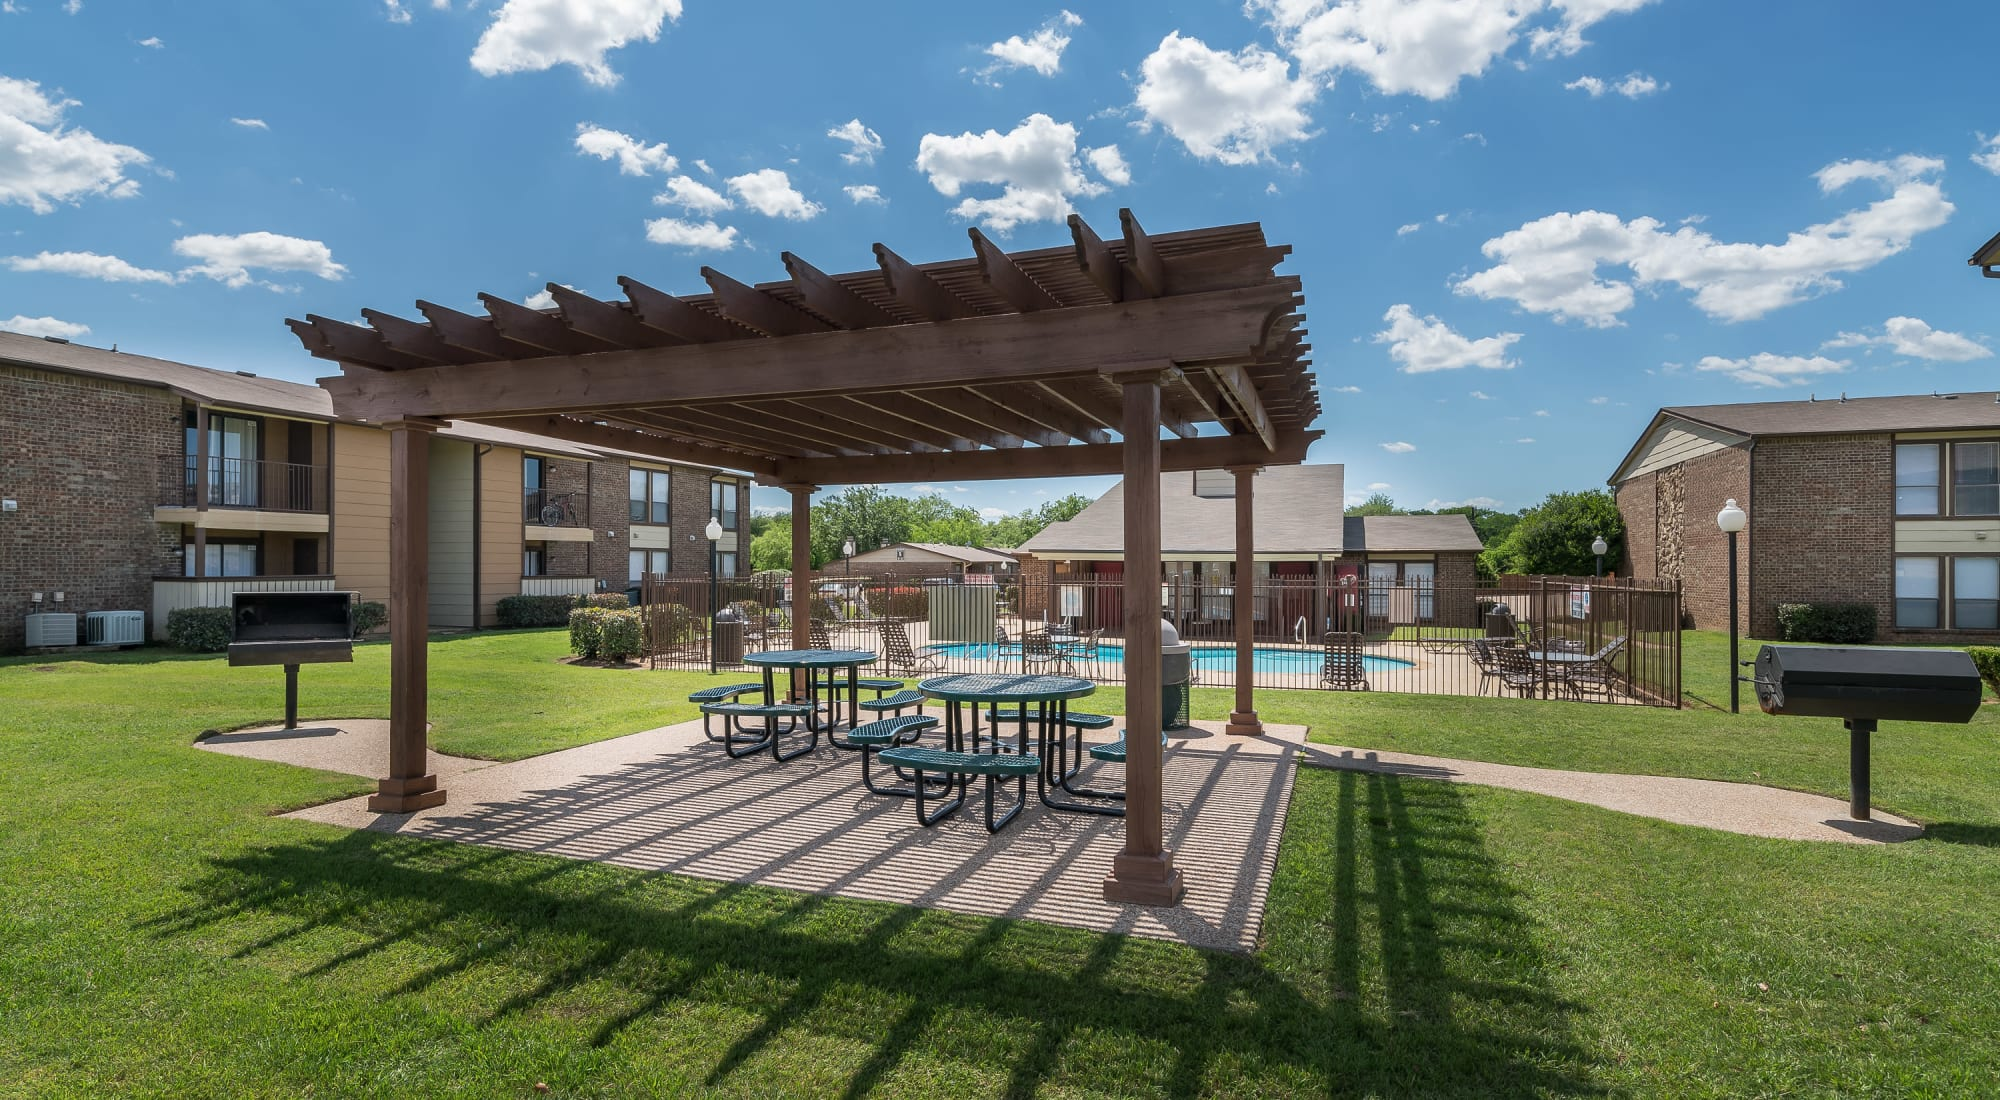 Reviews of 8500 Harwood Apartment Homes in North Richland Hills, Texas